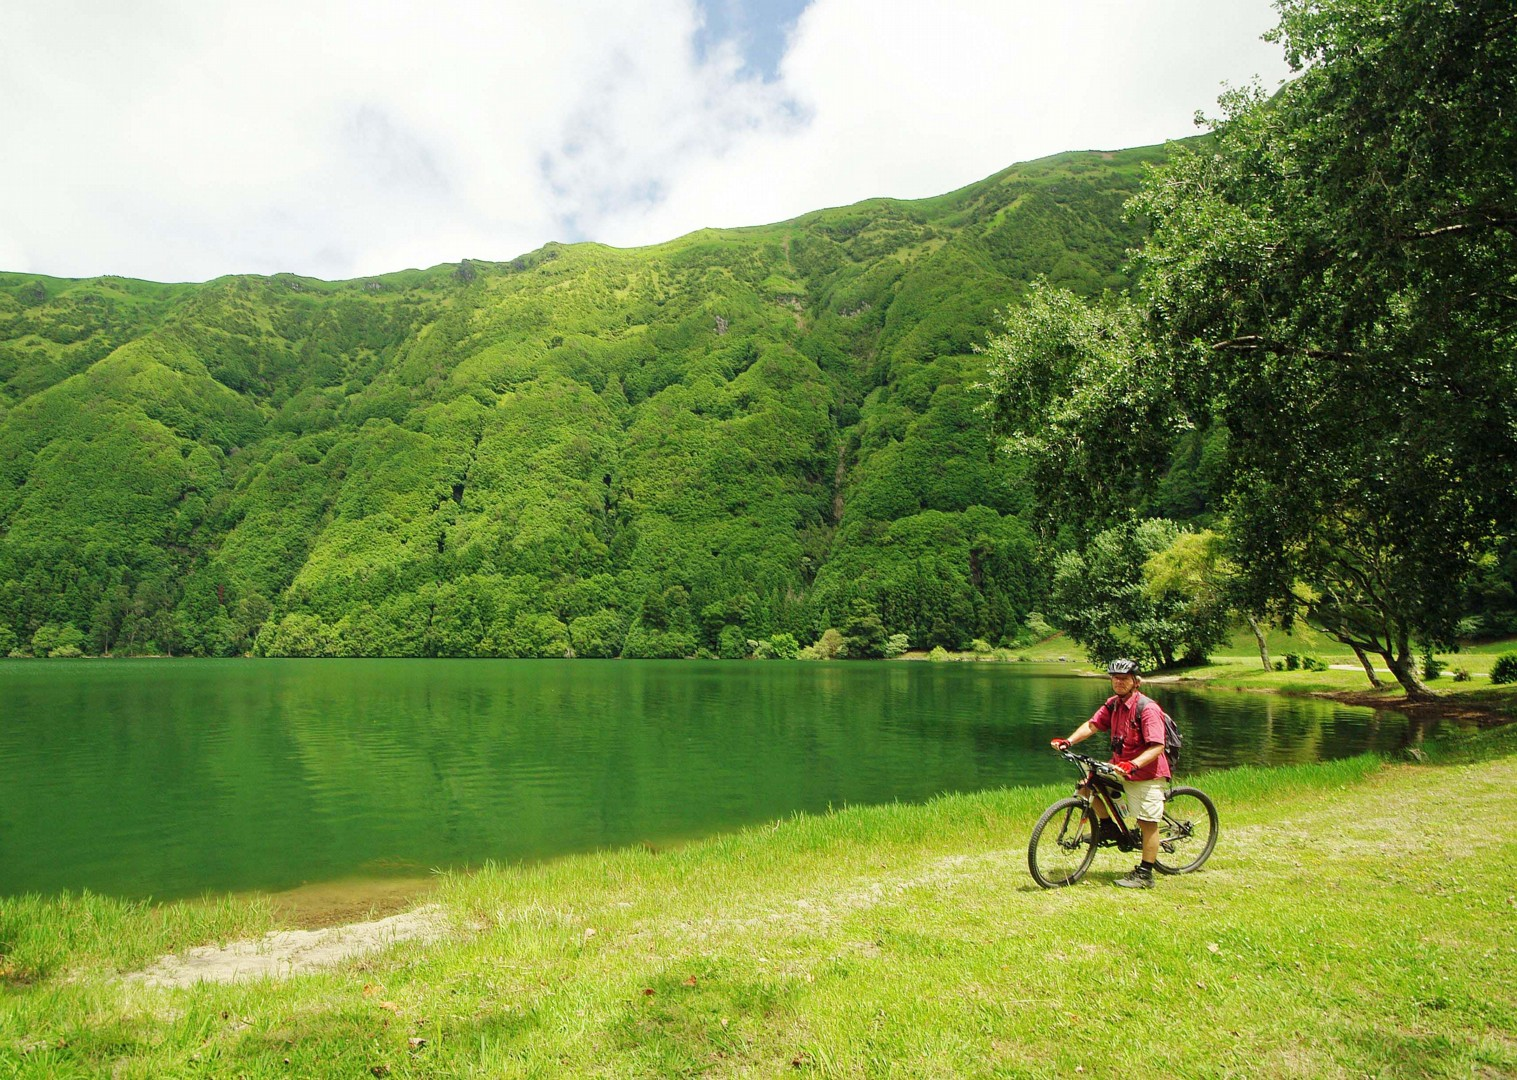 tronqueira-forests-self-guided-cycling-adventure.jpg - The Azores - Islands and Volcanoes - Self-Guided Leisure Cycling Holiday - Leisure Cycling